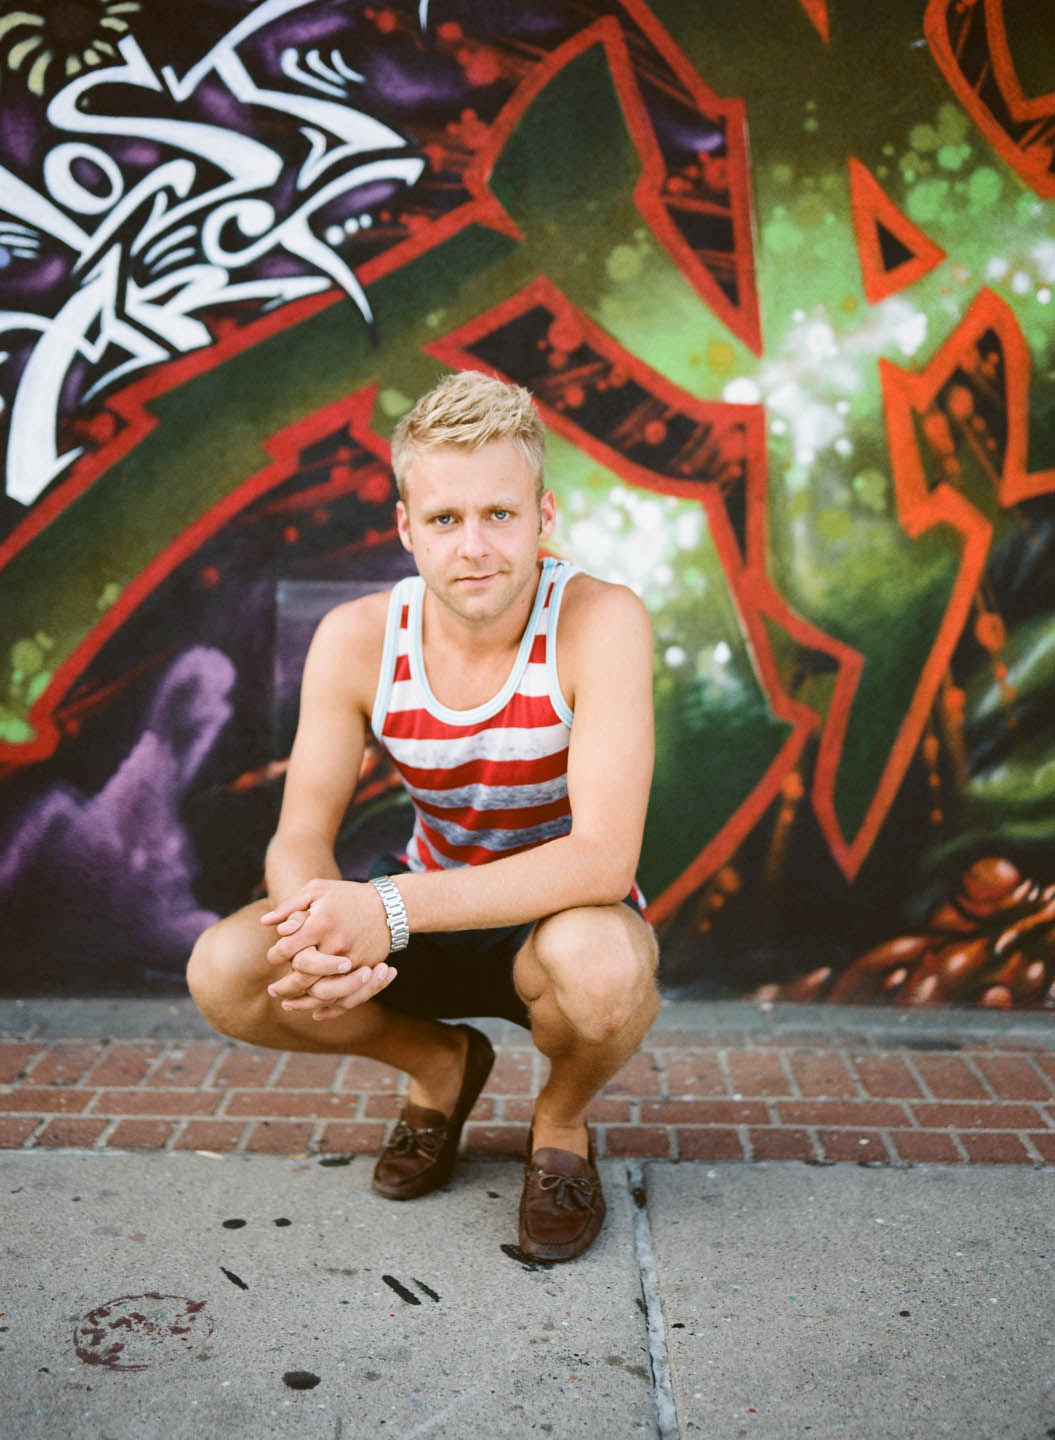 Male portrait with graffiti background